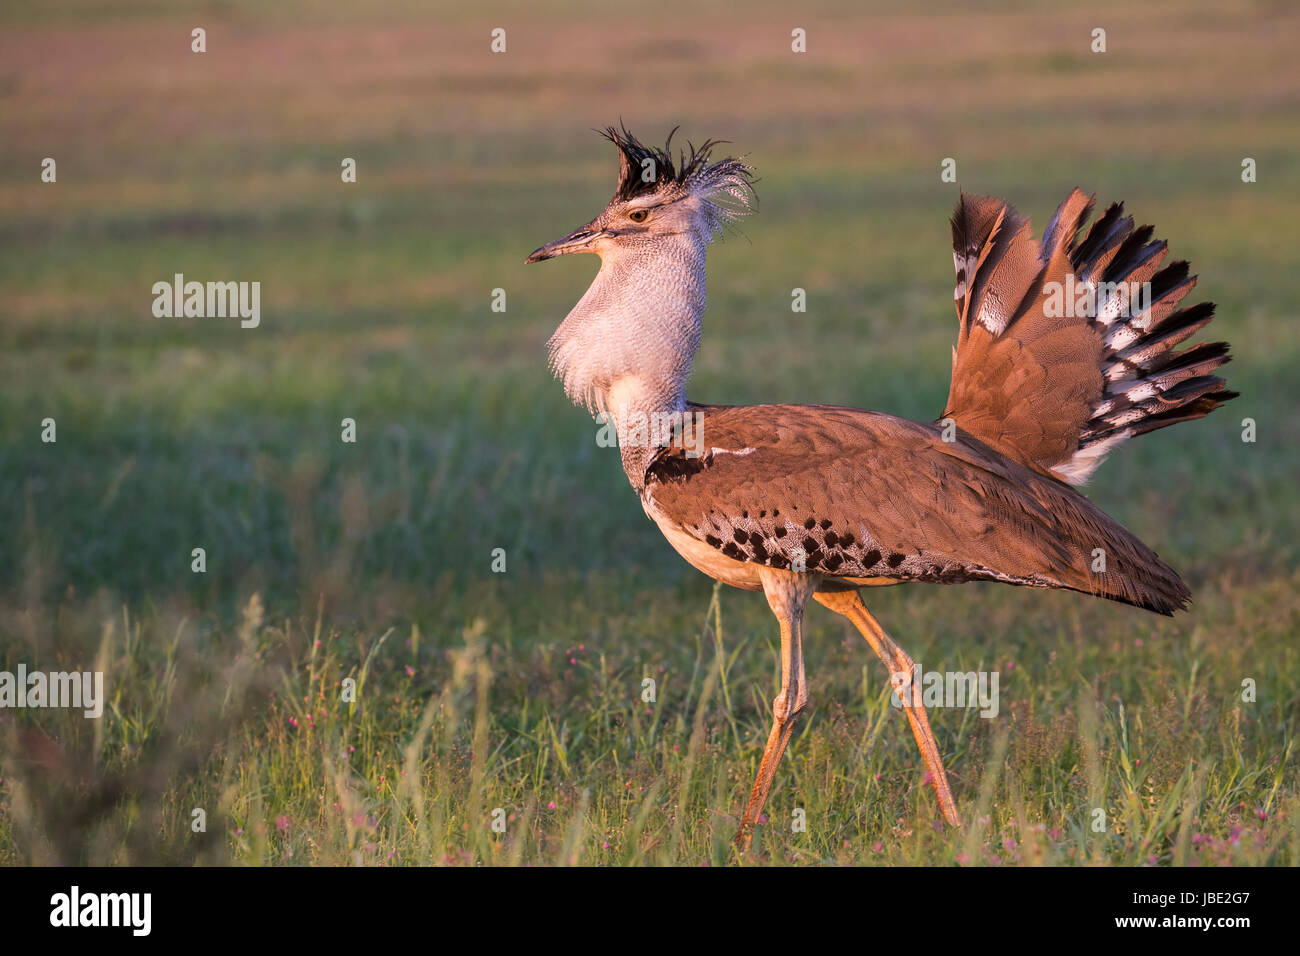 Kori bustard (Ardeotis kori) male courtship display, Kgalagadi Transfrontier Park, Northern Cape, South Africa, Stock Photo